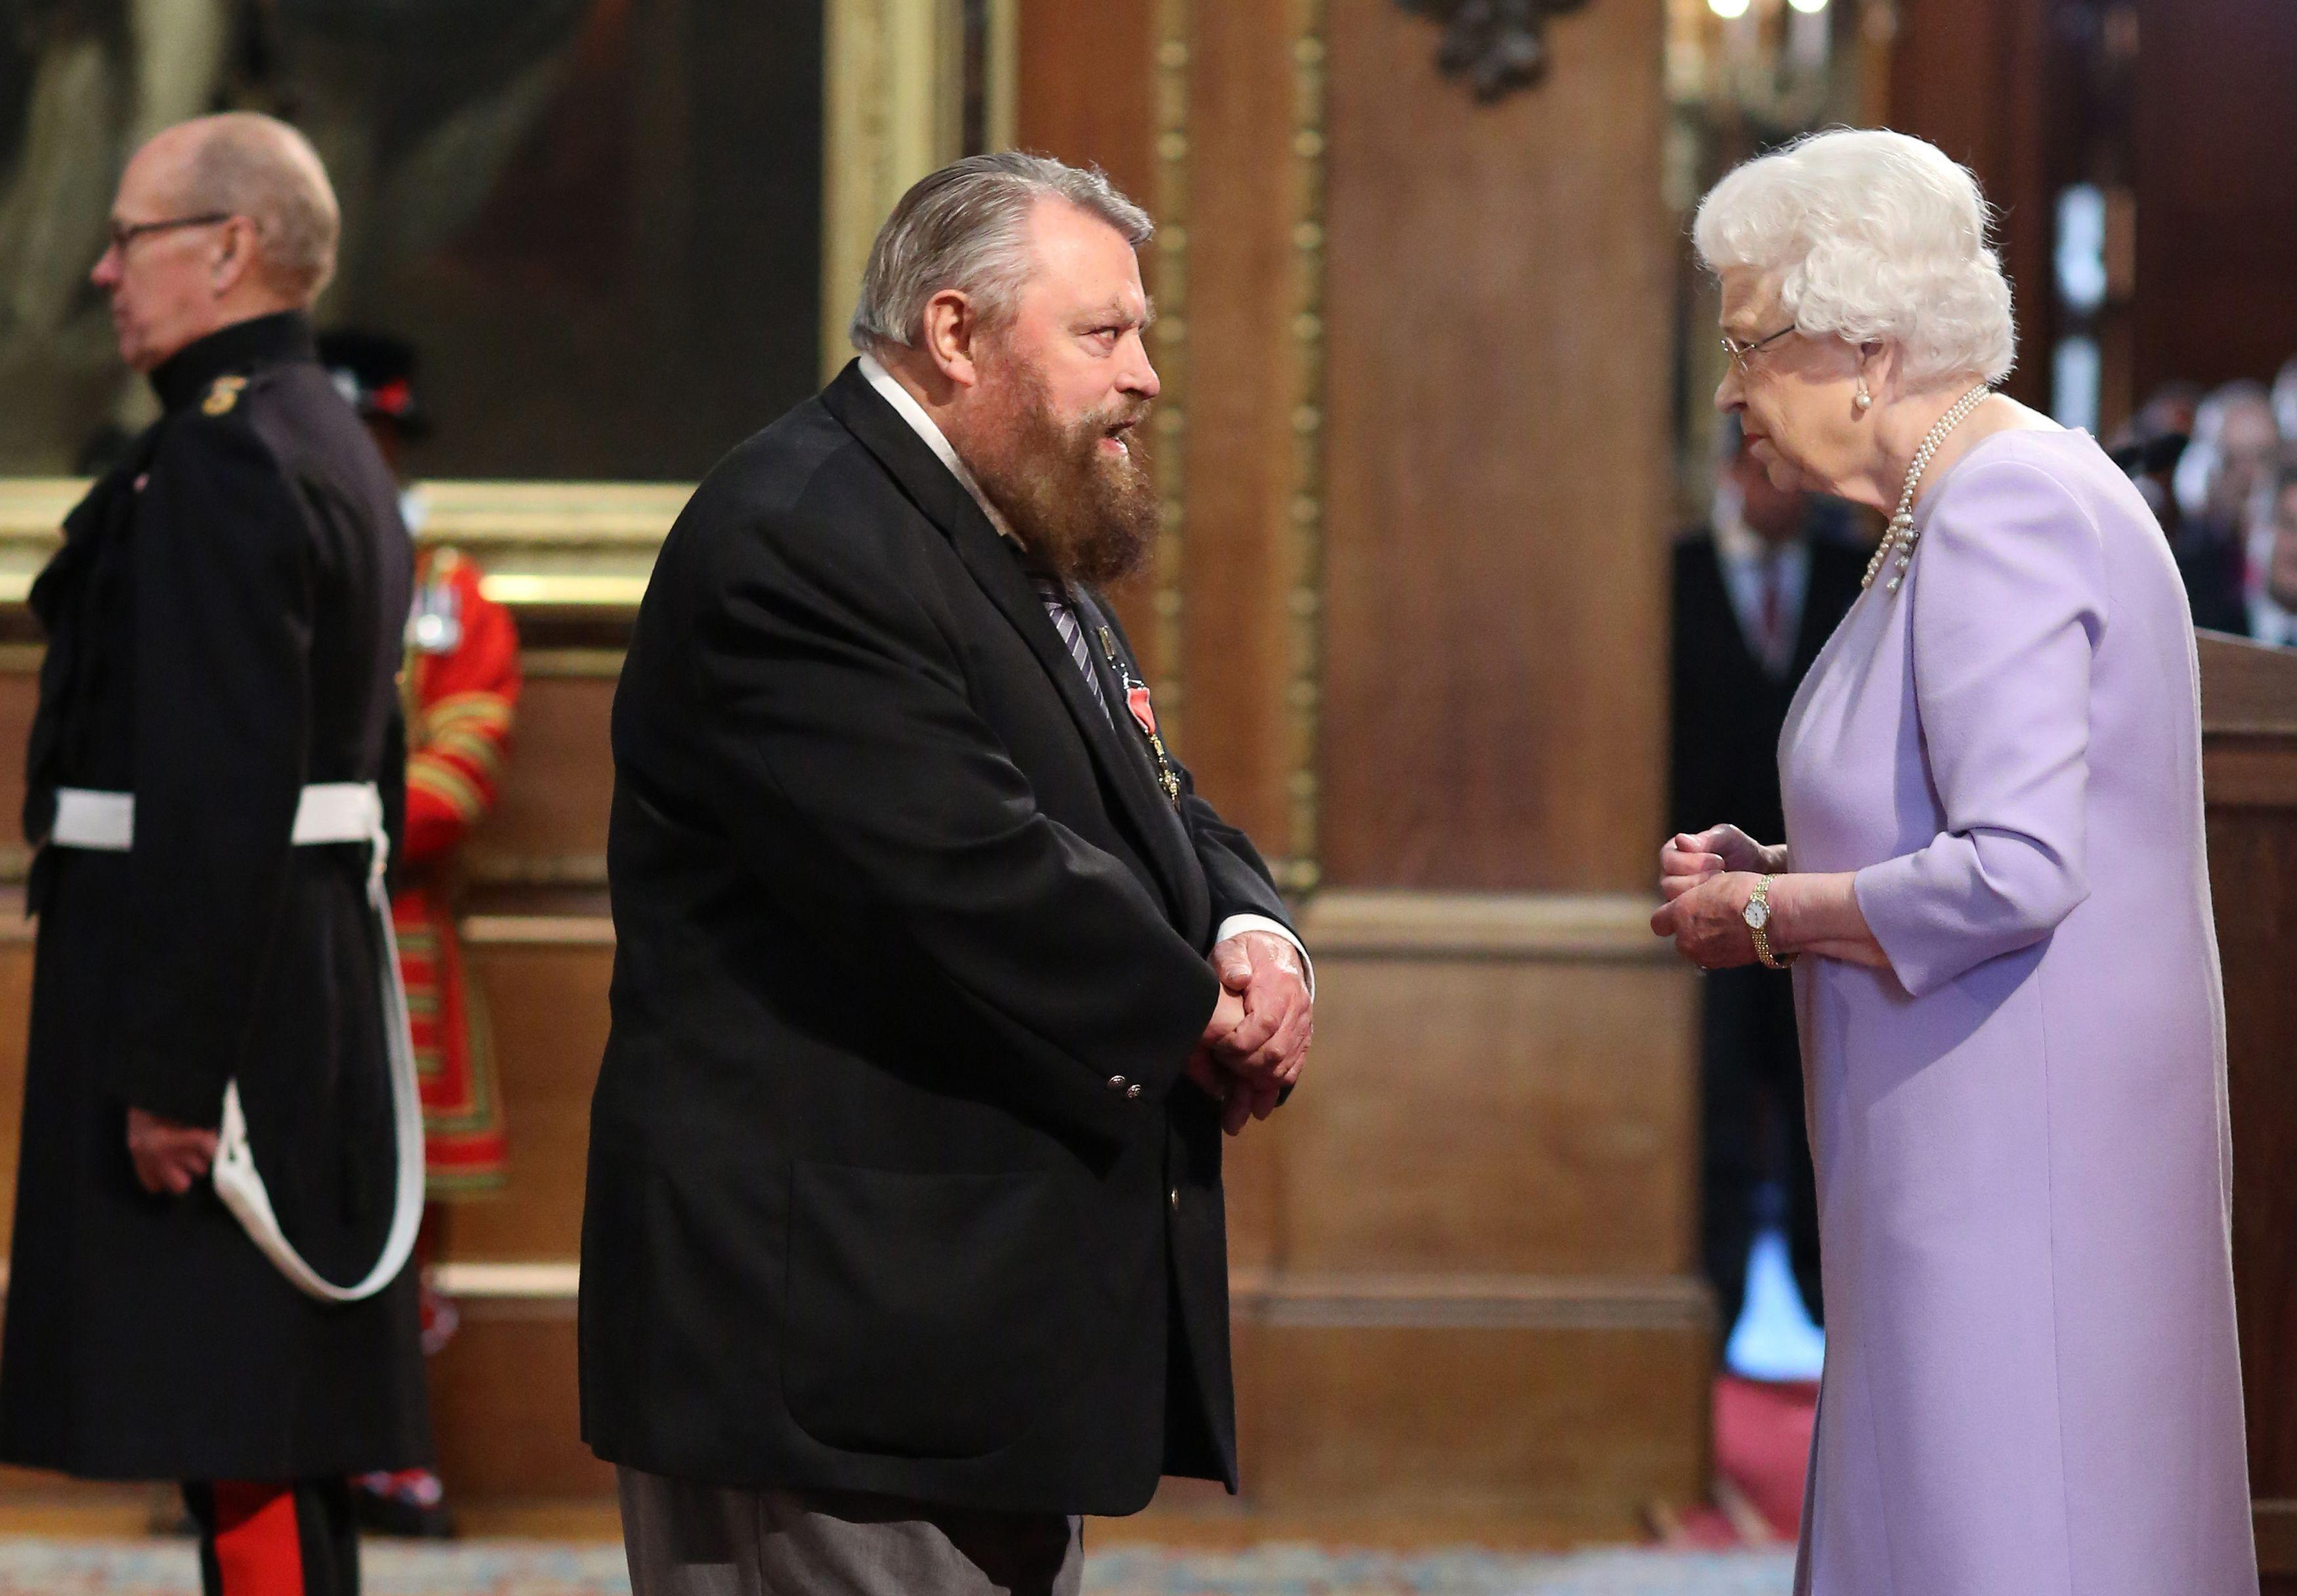 Actor Brian Blessed is made an Officer of the Order of the British Empire (OBE) by Queen Elizabeth II during an Investiture ceremony at Windsor Castle.